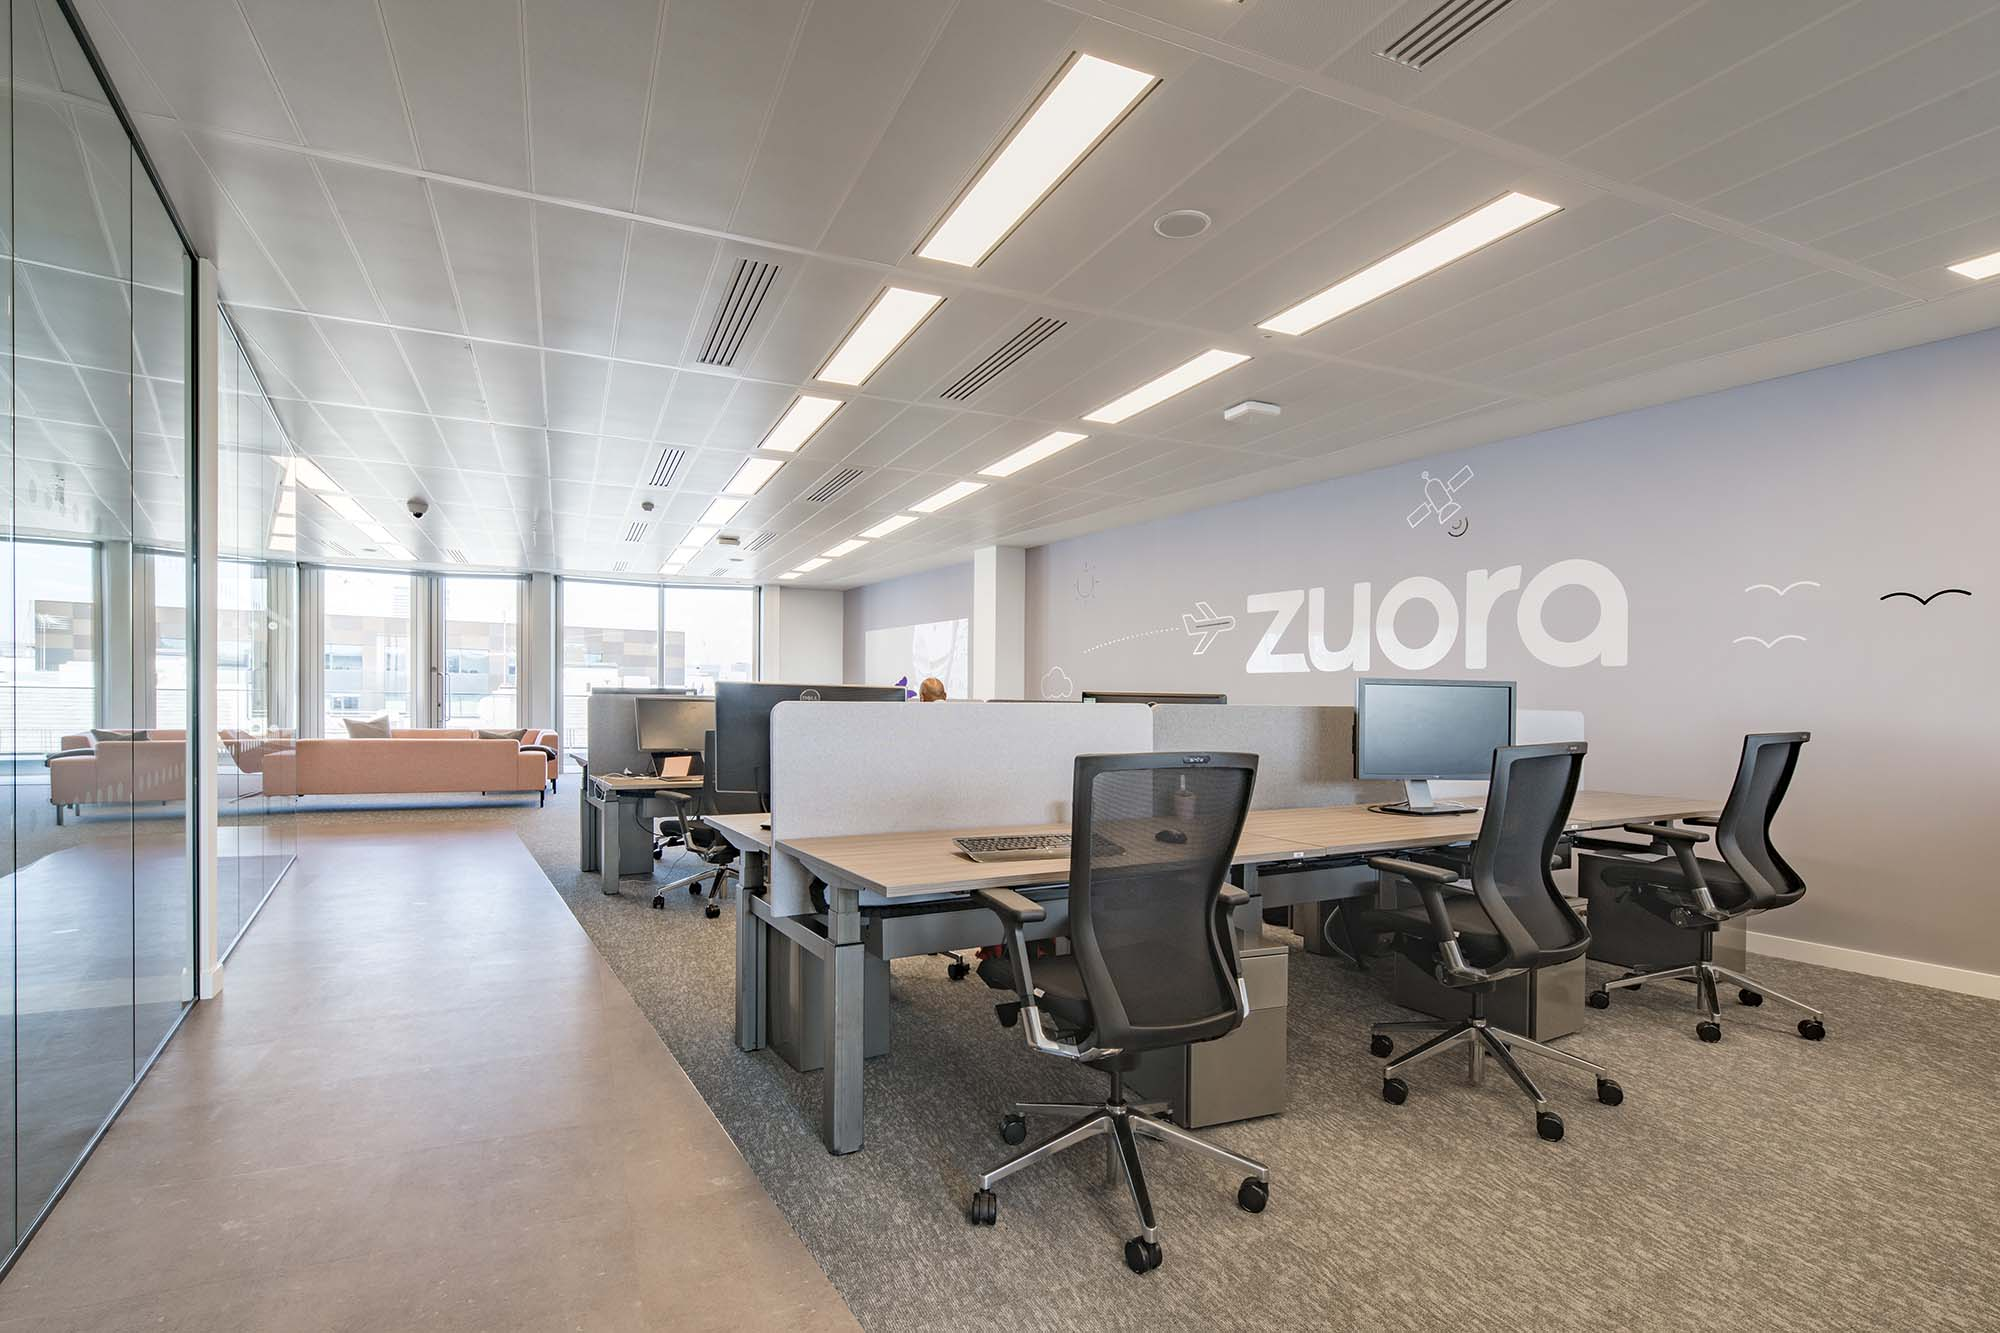 Zuora Height Adjustable Desks